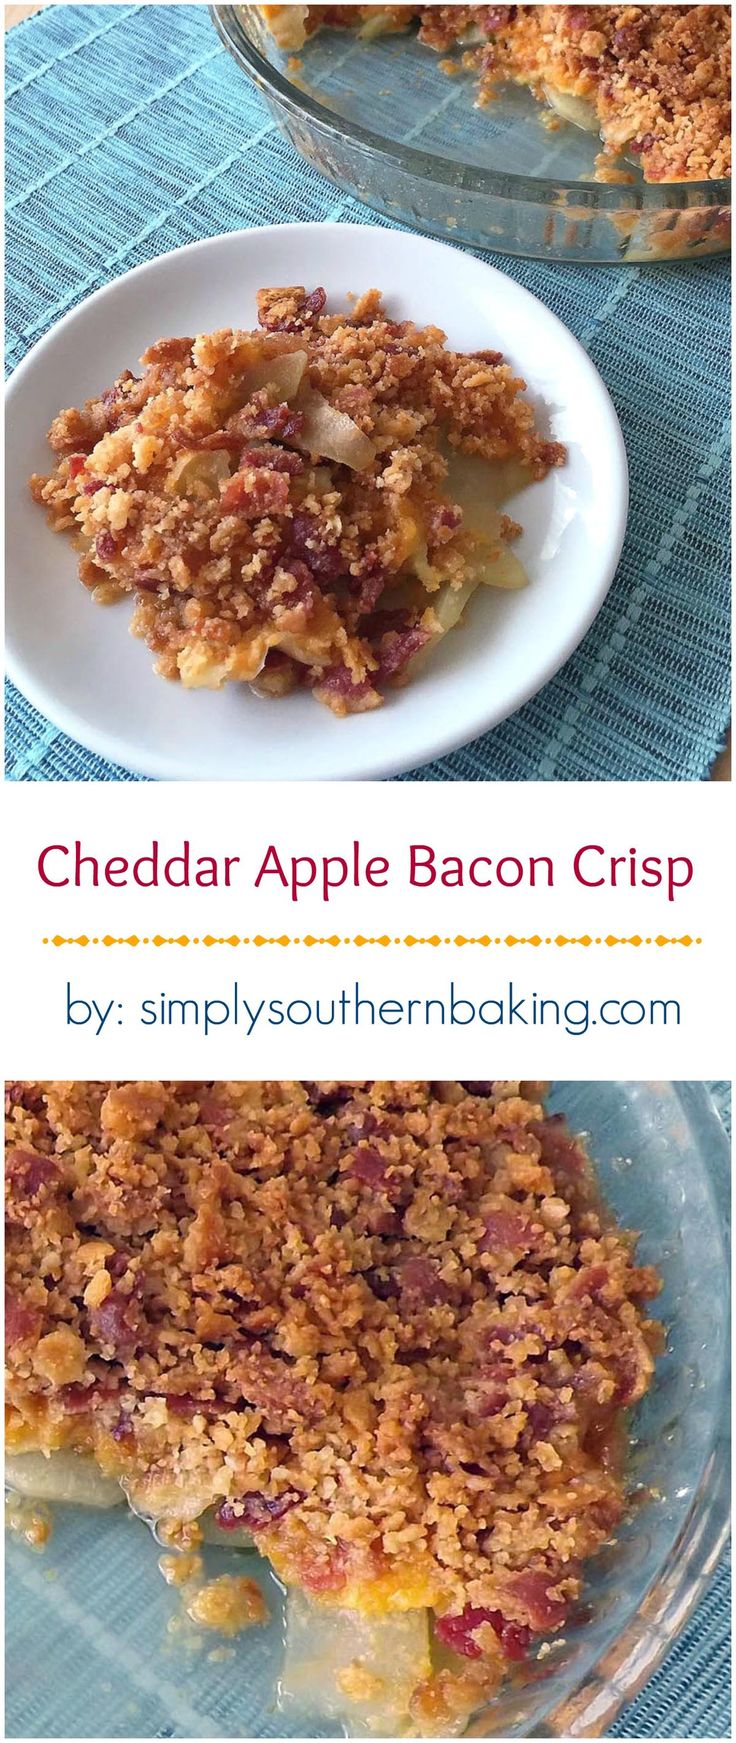 Apples, cheese, bacon and buttery crackers come together to make a sweet, salty, crunchy and savory apple crisp all rolled into one.